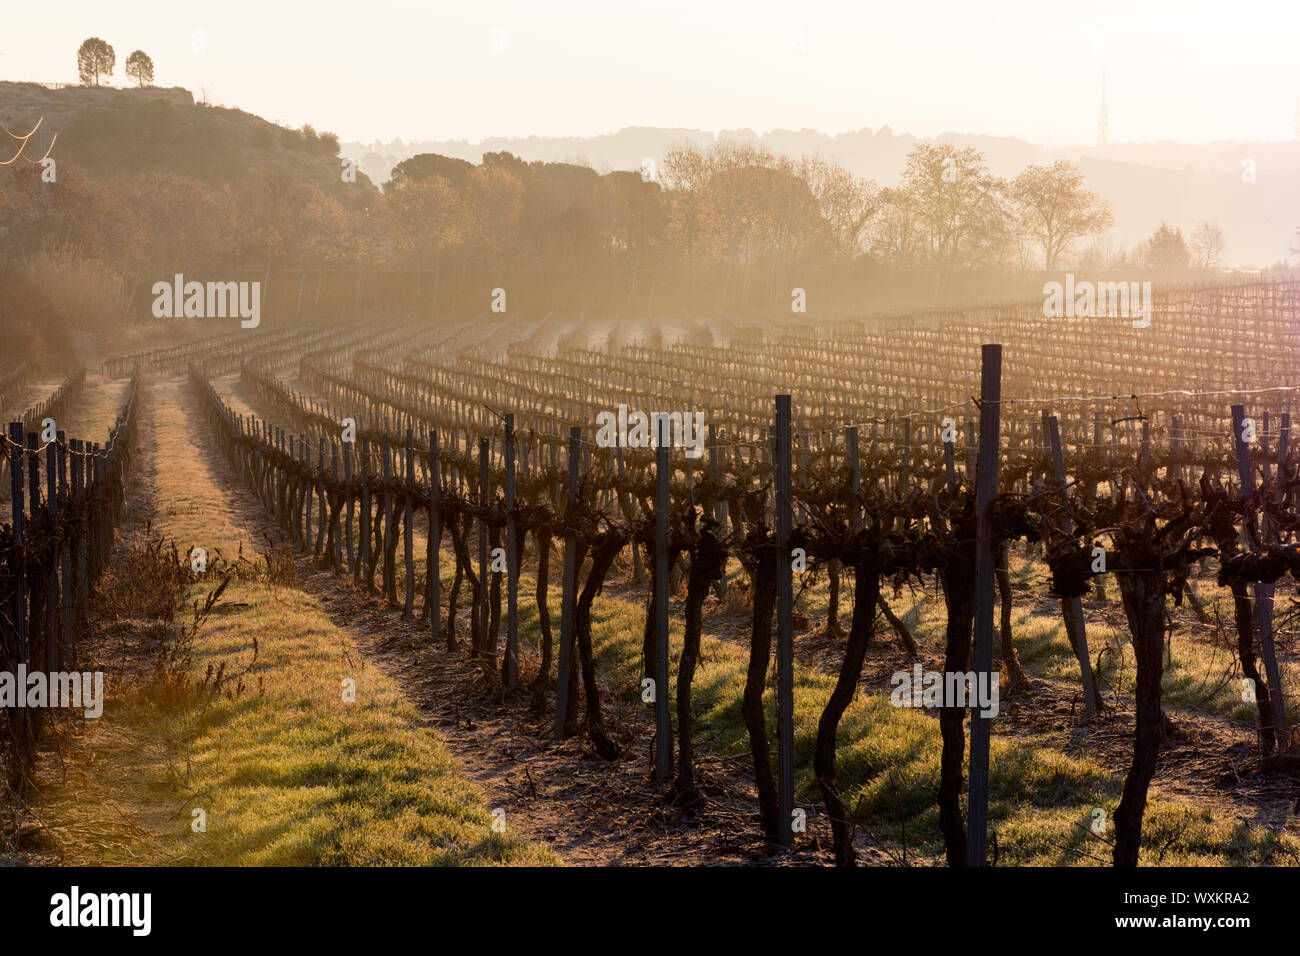 A vineyard with a forest in the background. Misty morning at the sunrise. Lights and shadows. Stock Photo